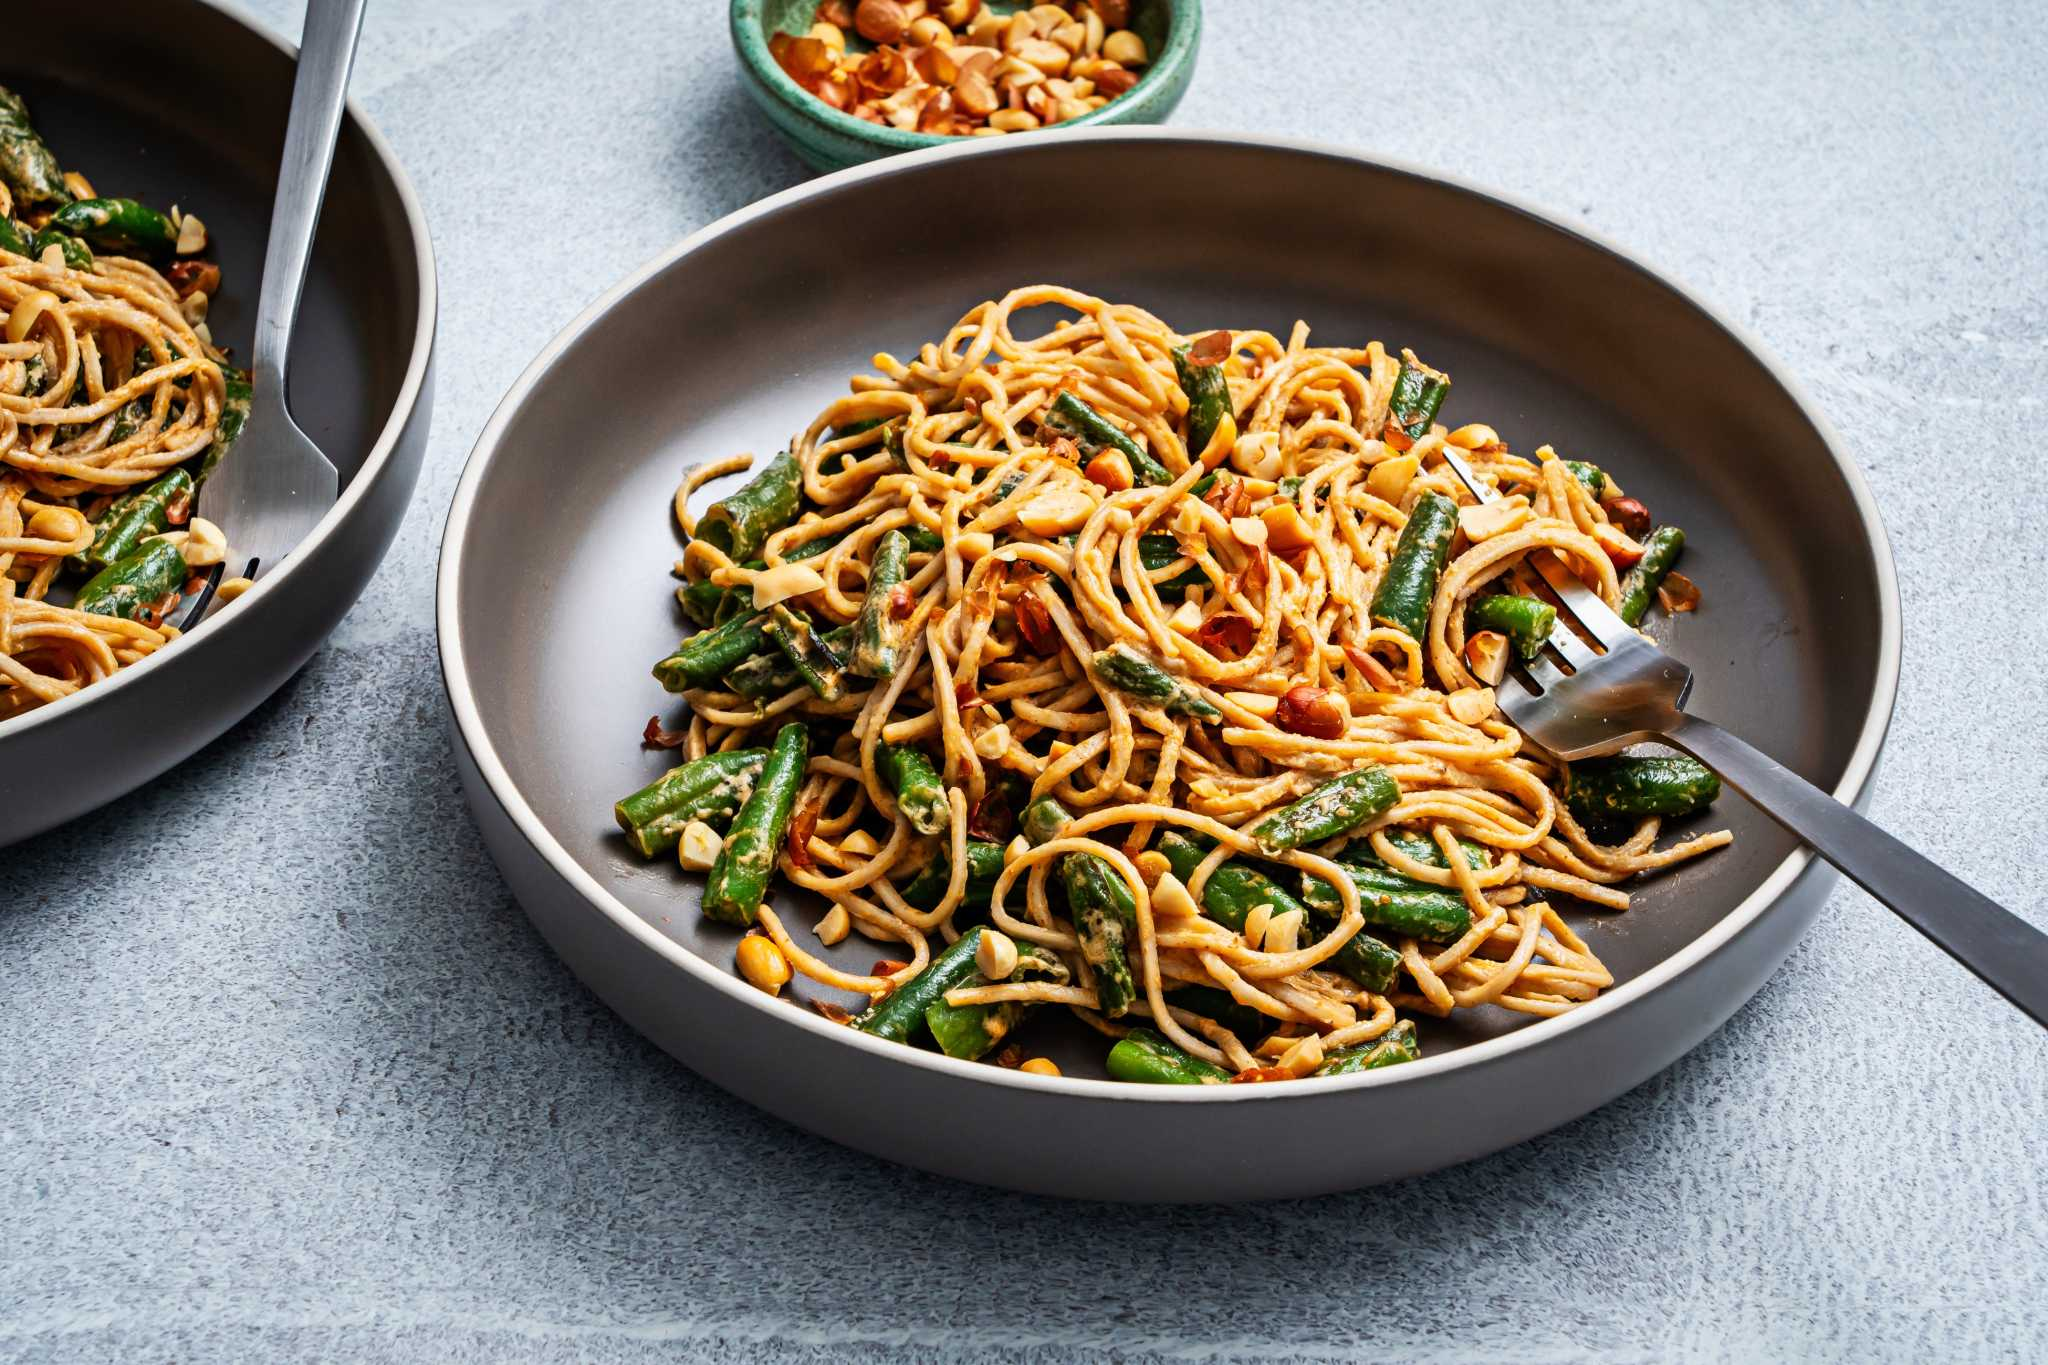 Spicy peanut noodles are a quick, pantry-friendly meal that's ready for riffing